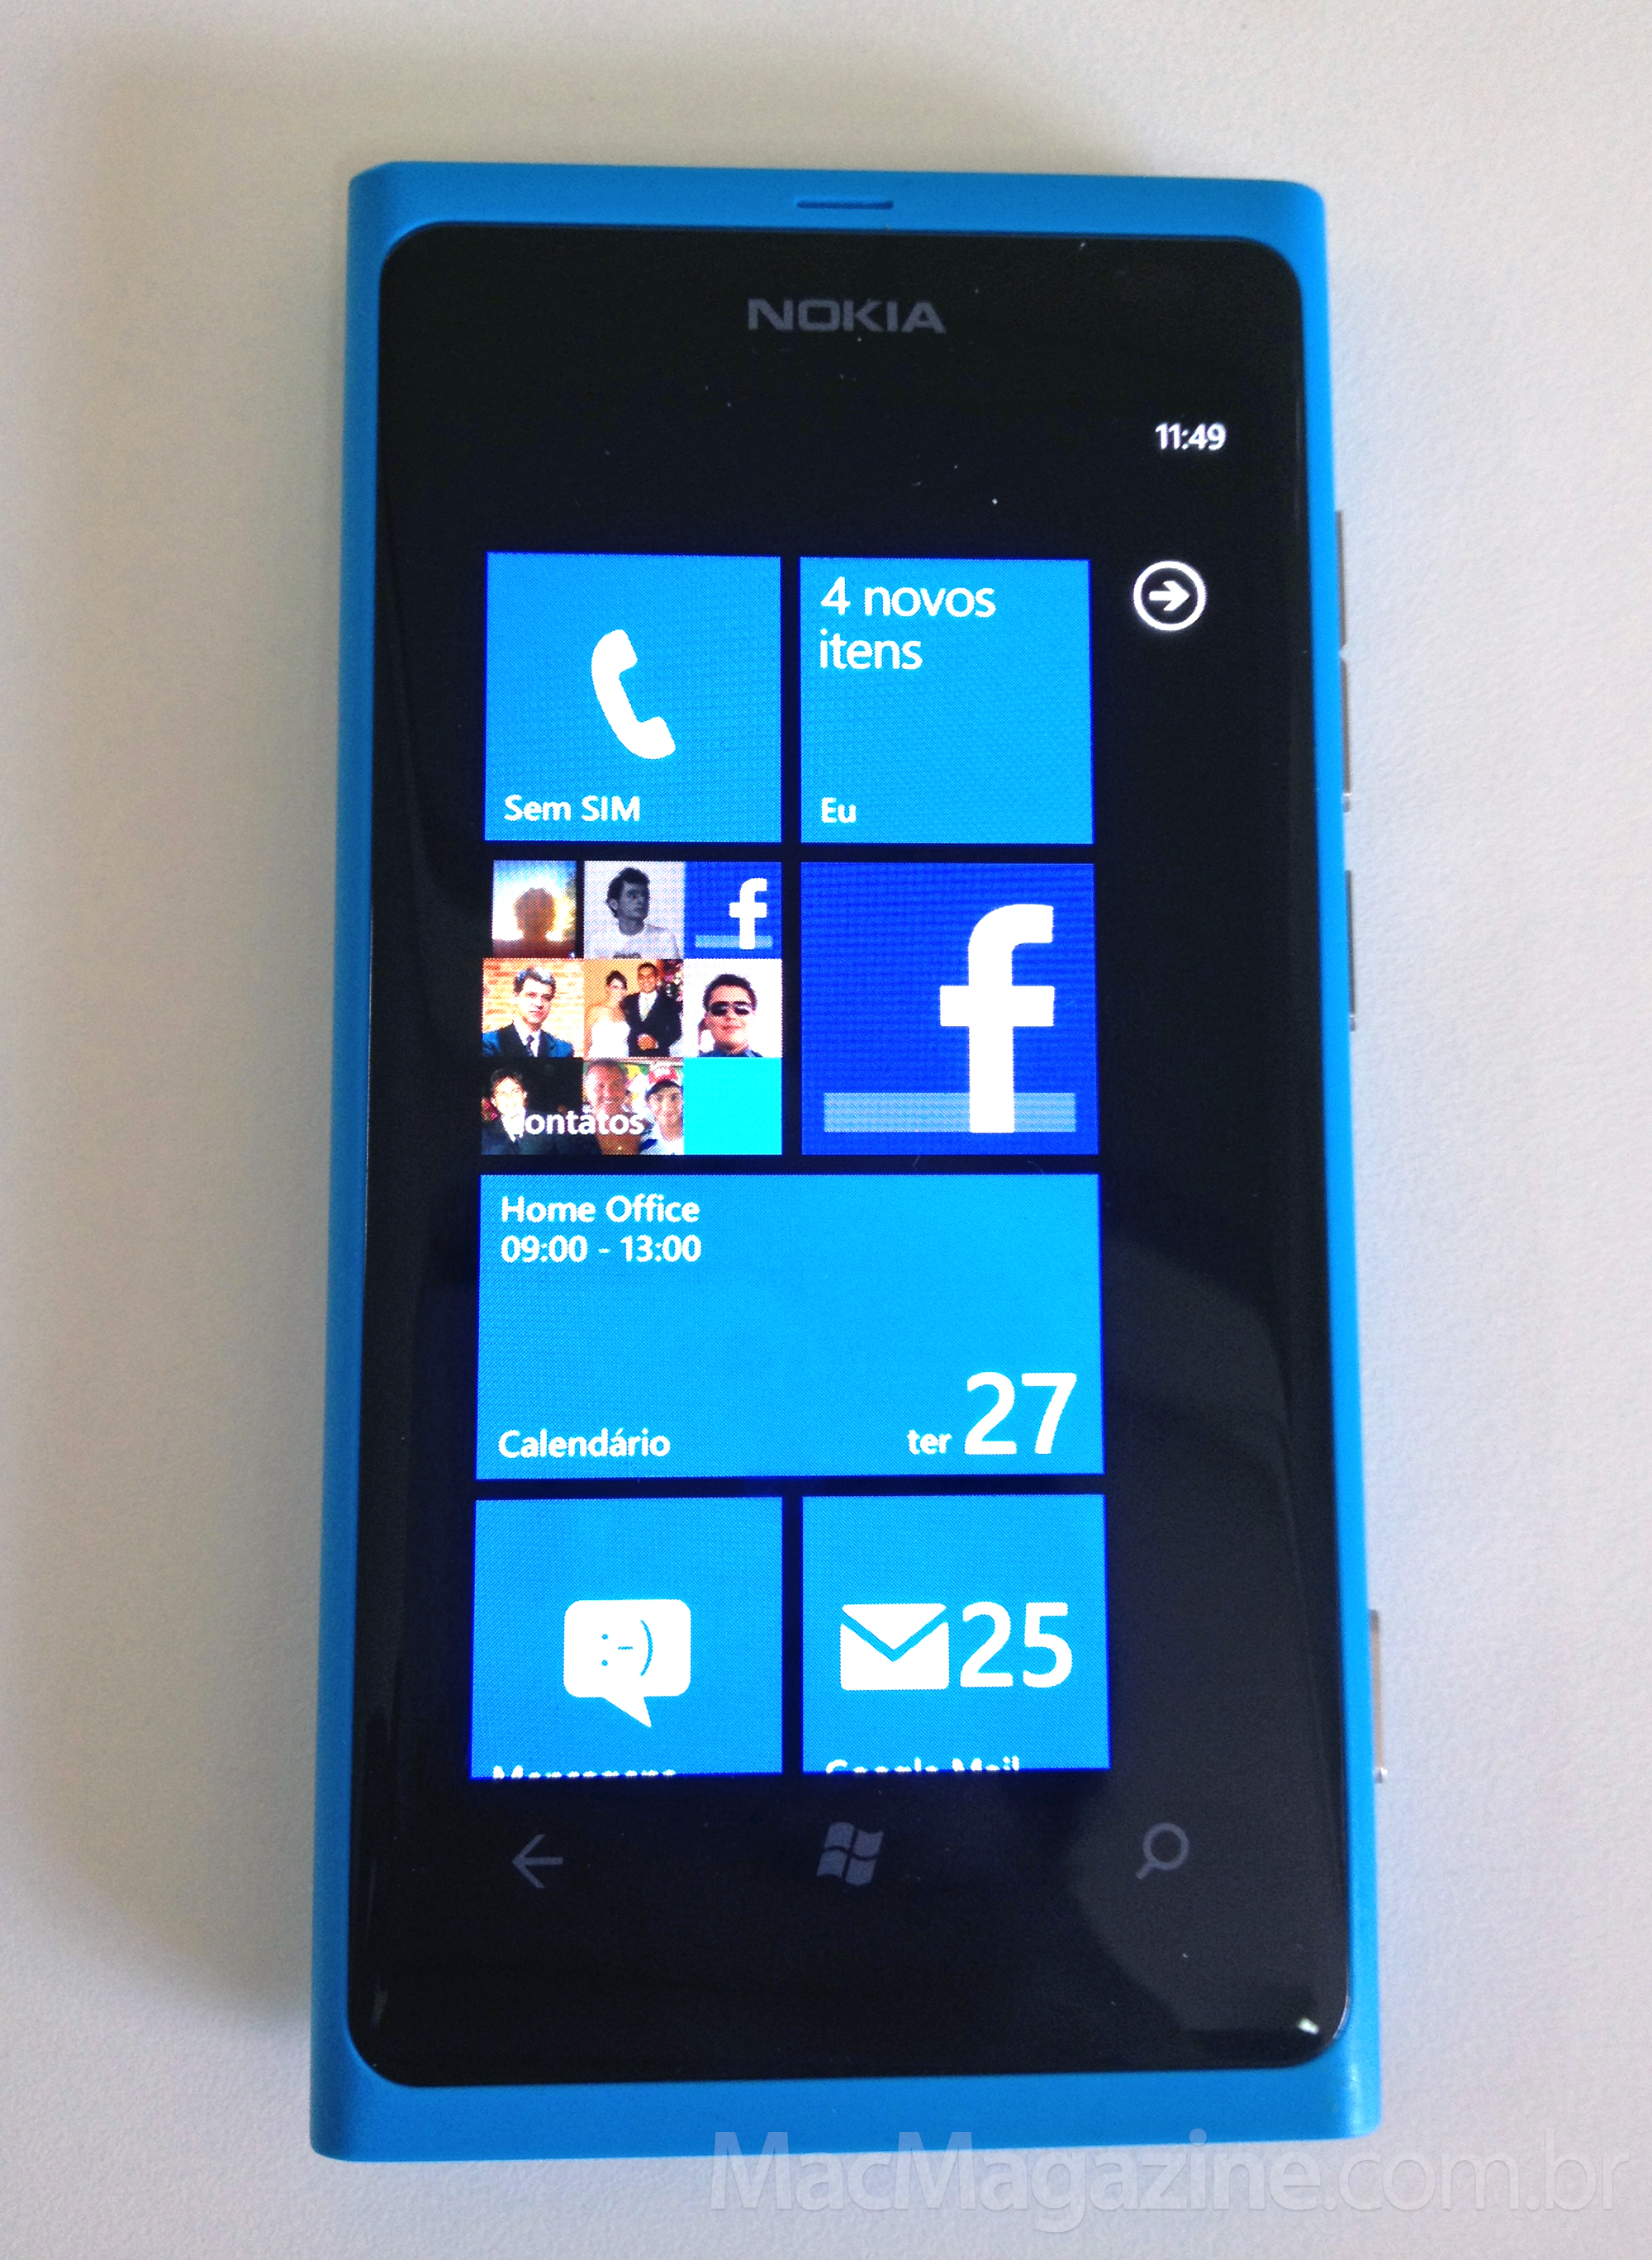 Nokia Lumia 800 com Windows Phone 7